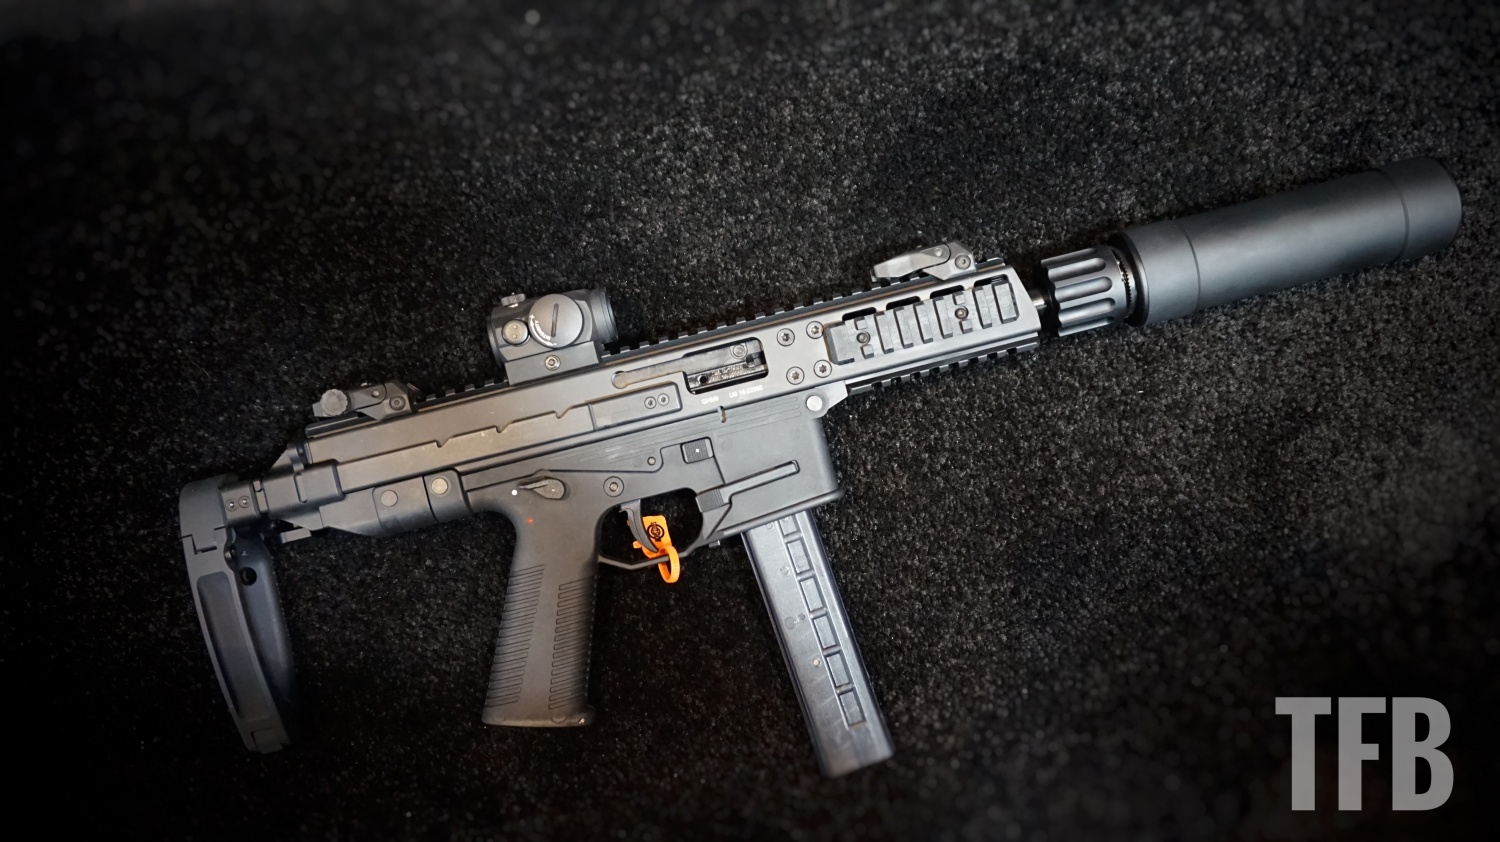 shot 2018 new bampt pistols rifles silencers and